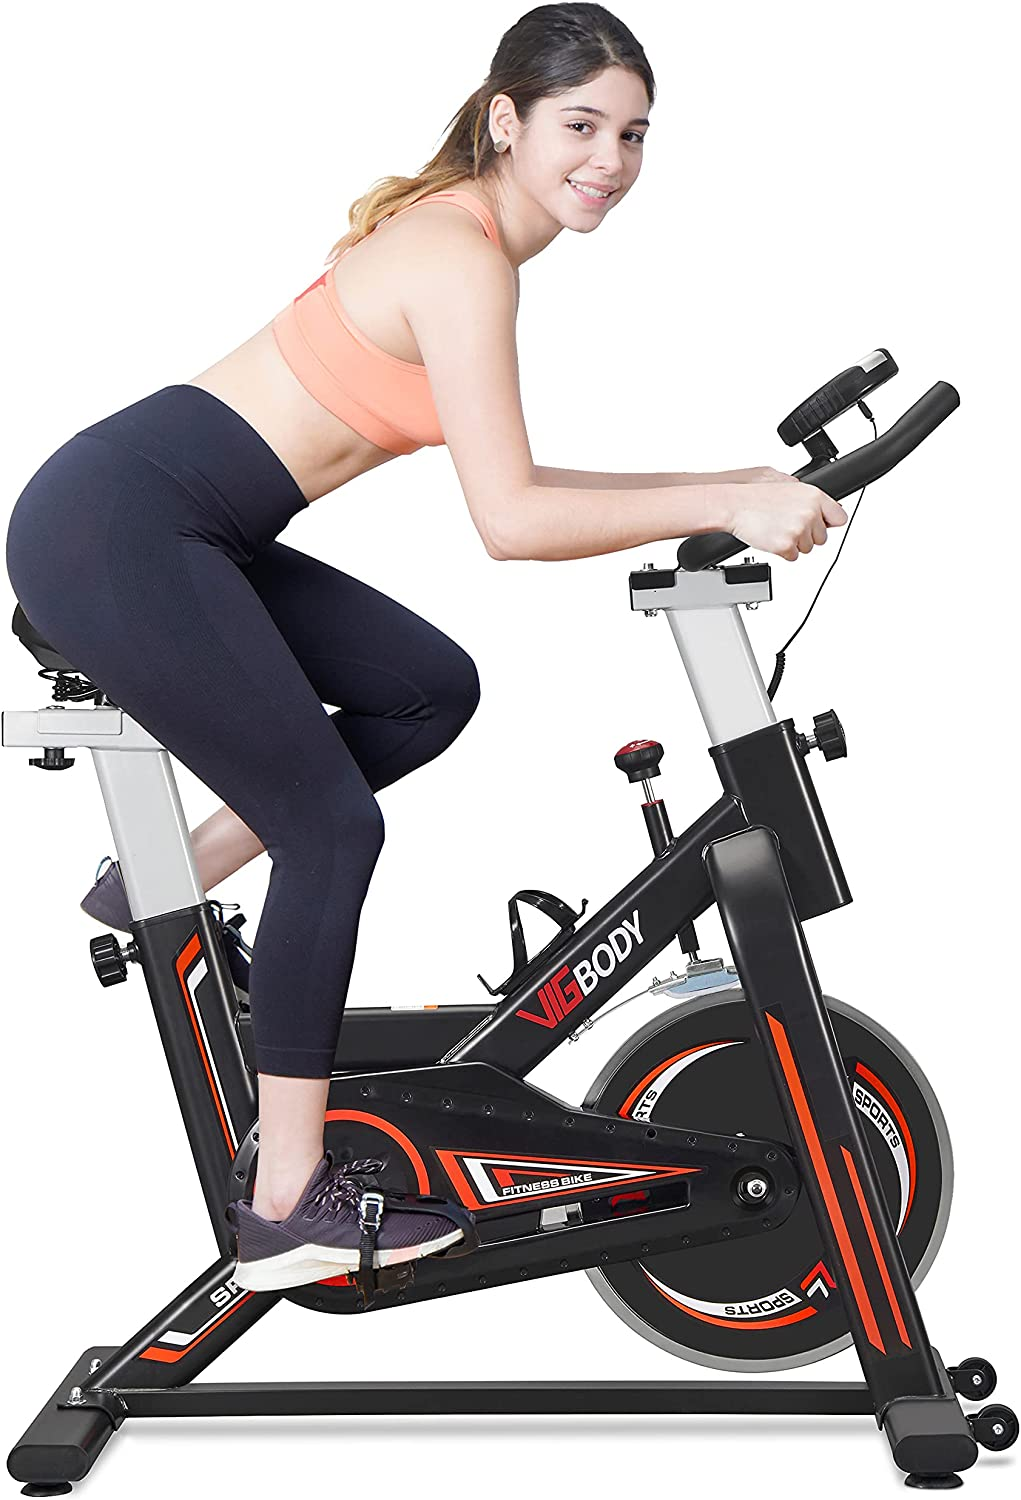 VIGBODY Super-cheap Stationary Exercise Bike Cycling Ranking TOP3 for Cardio Indoor